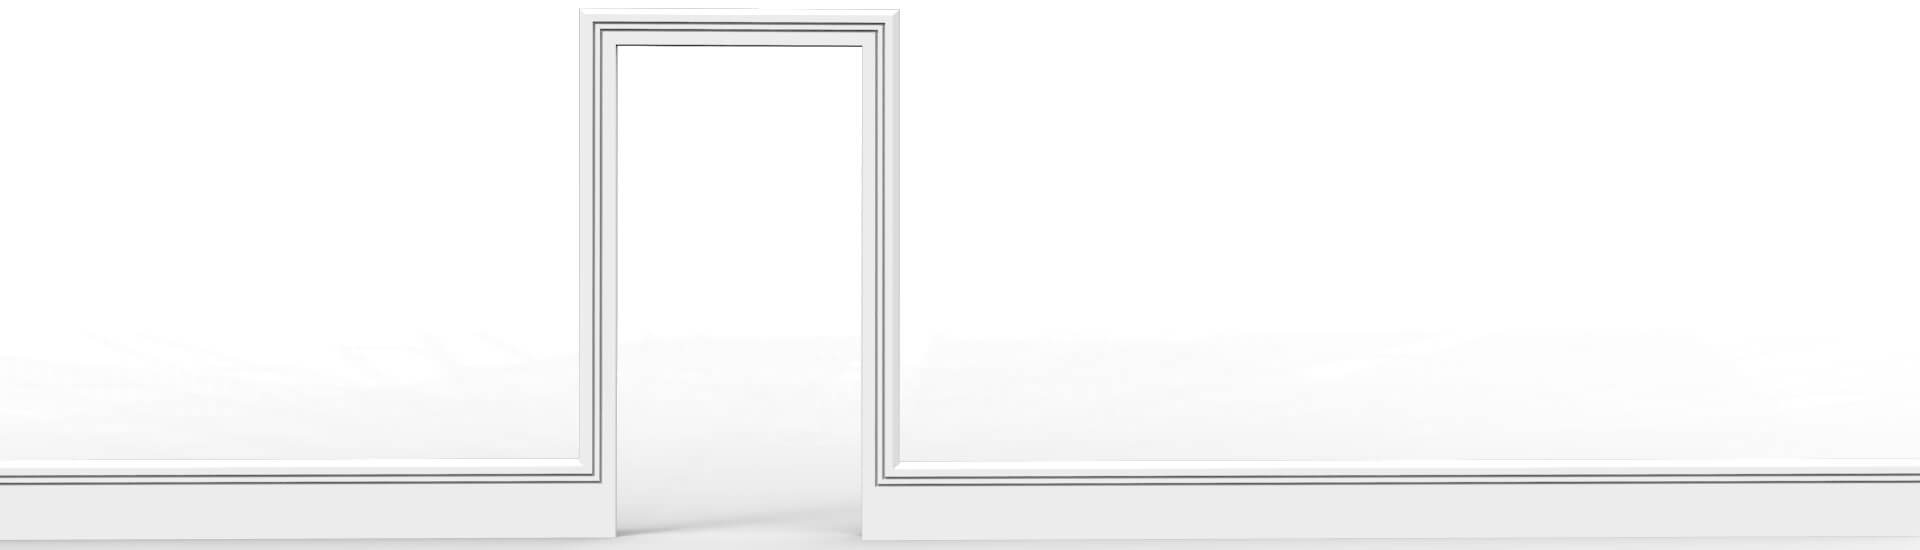 Grooved MDF Architrave